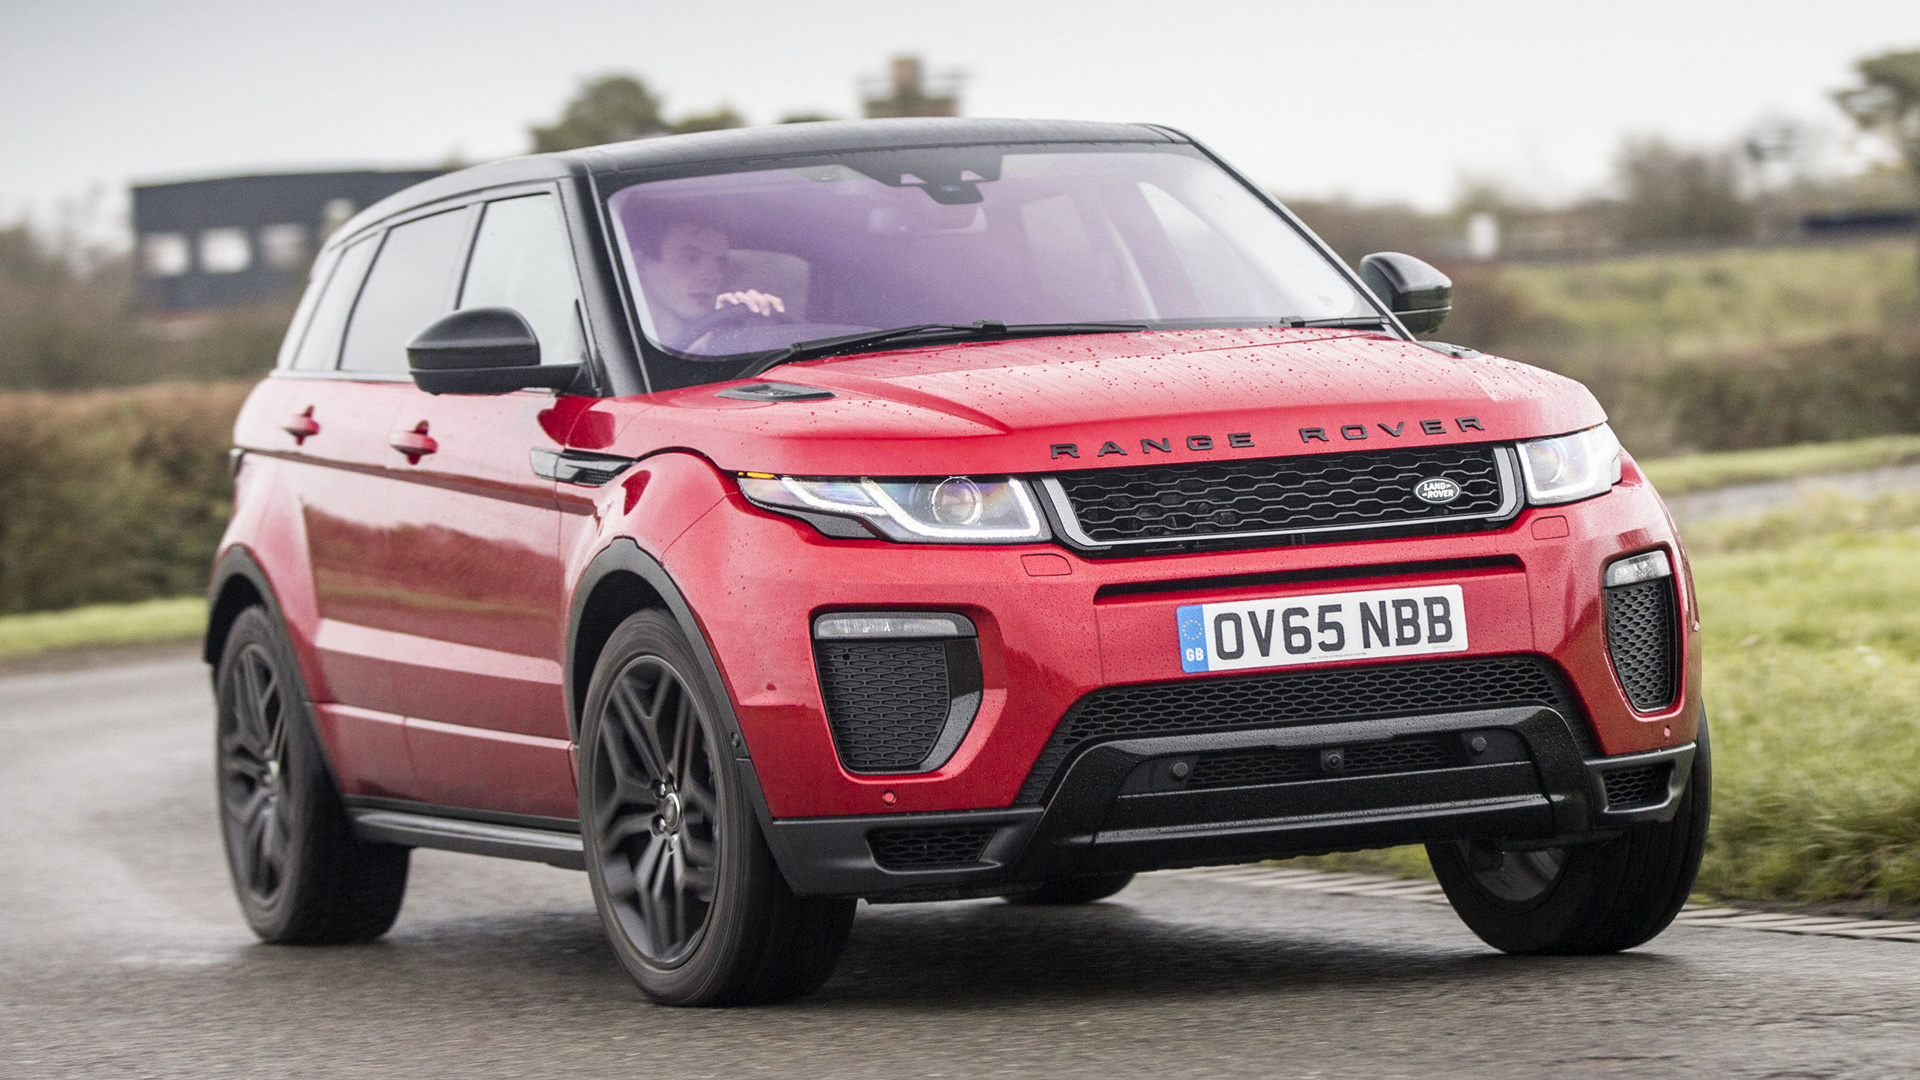 range rover evoque dynamic 2015 uk wallpapers and hd images car pixel. Black Bedroom Furniture Sets. Home Design Ideas